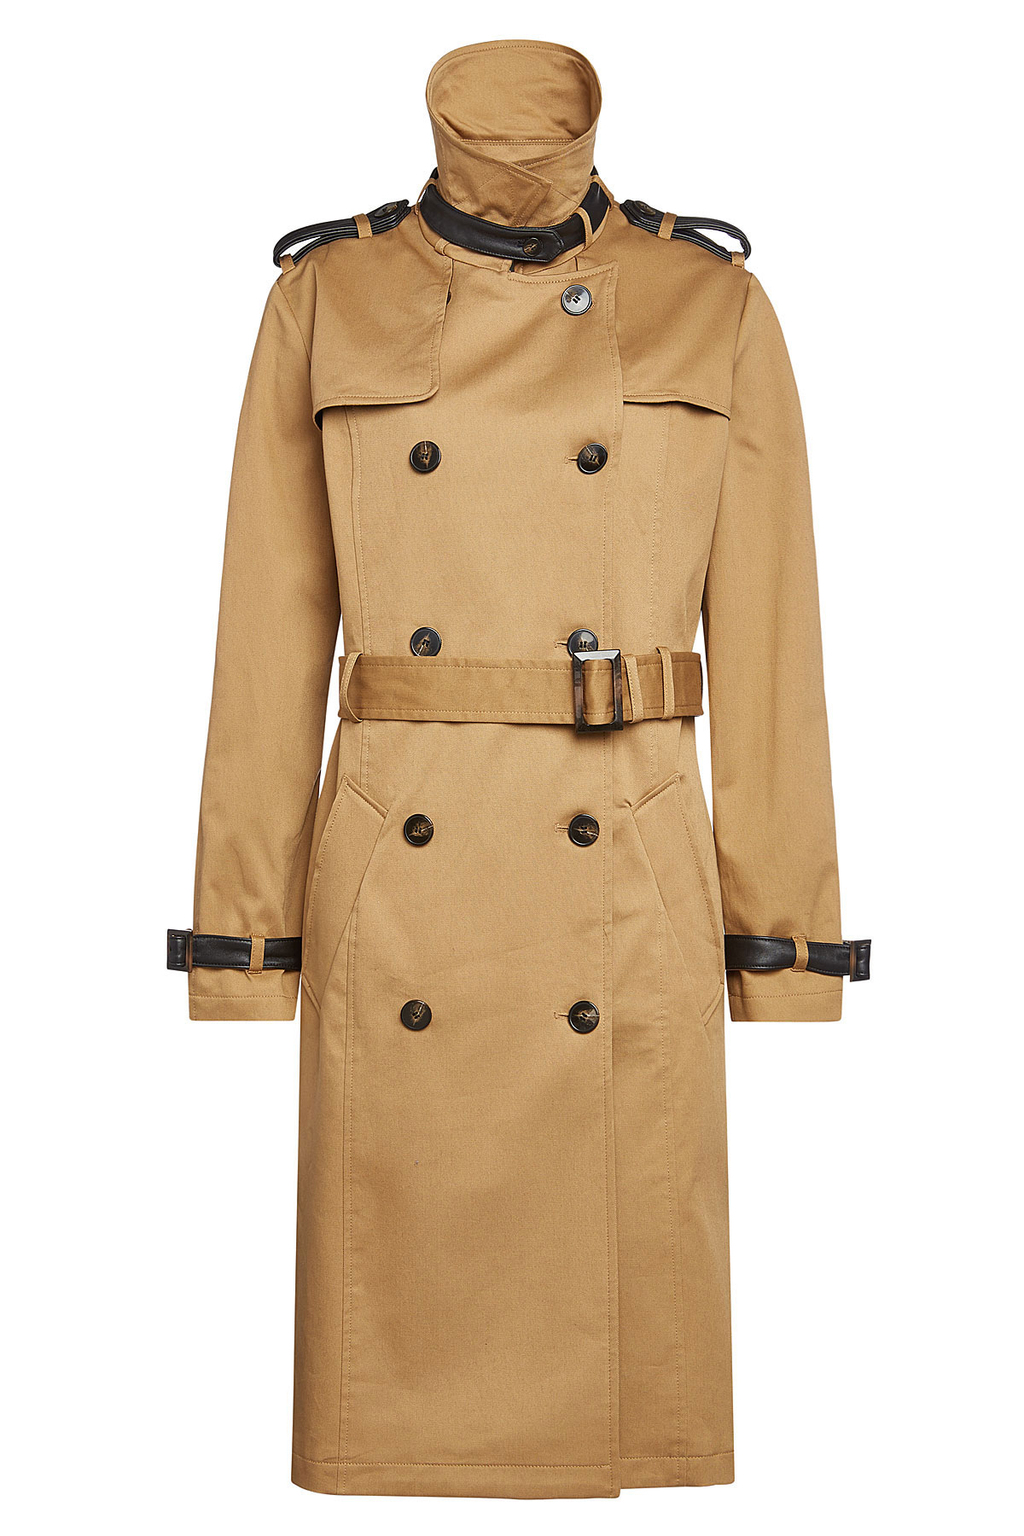 Cotton Trench Coat - pattern: plain; collar: funnel; style: double breasted; length: on the knee; predominant colour: camel; secondary colour: black; occasions: casual; fit: tailored/fitted; fibres: cotton - 100%; waist detail: belted waist/tie at waist/drawstring; sleeve length: long sleeve; sleeve style: standard; texture group: technical outdoor fabrics; collar break: high; pattern type: fabric; wardrobe: basic; season: a/w 2016